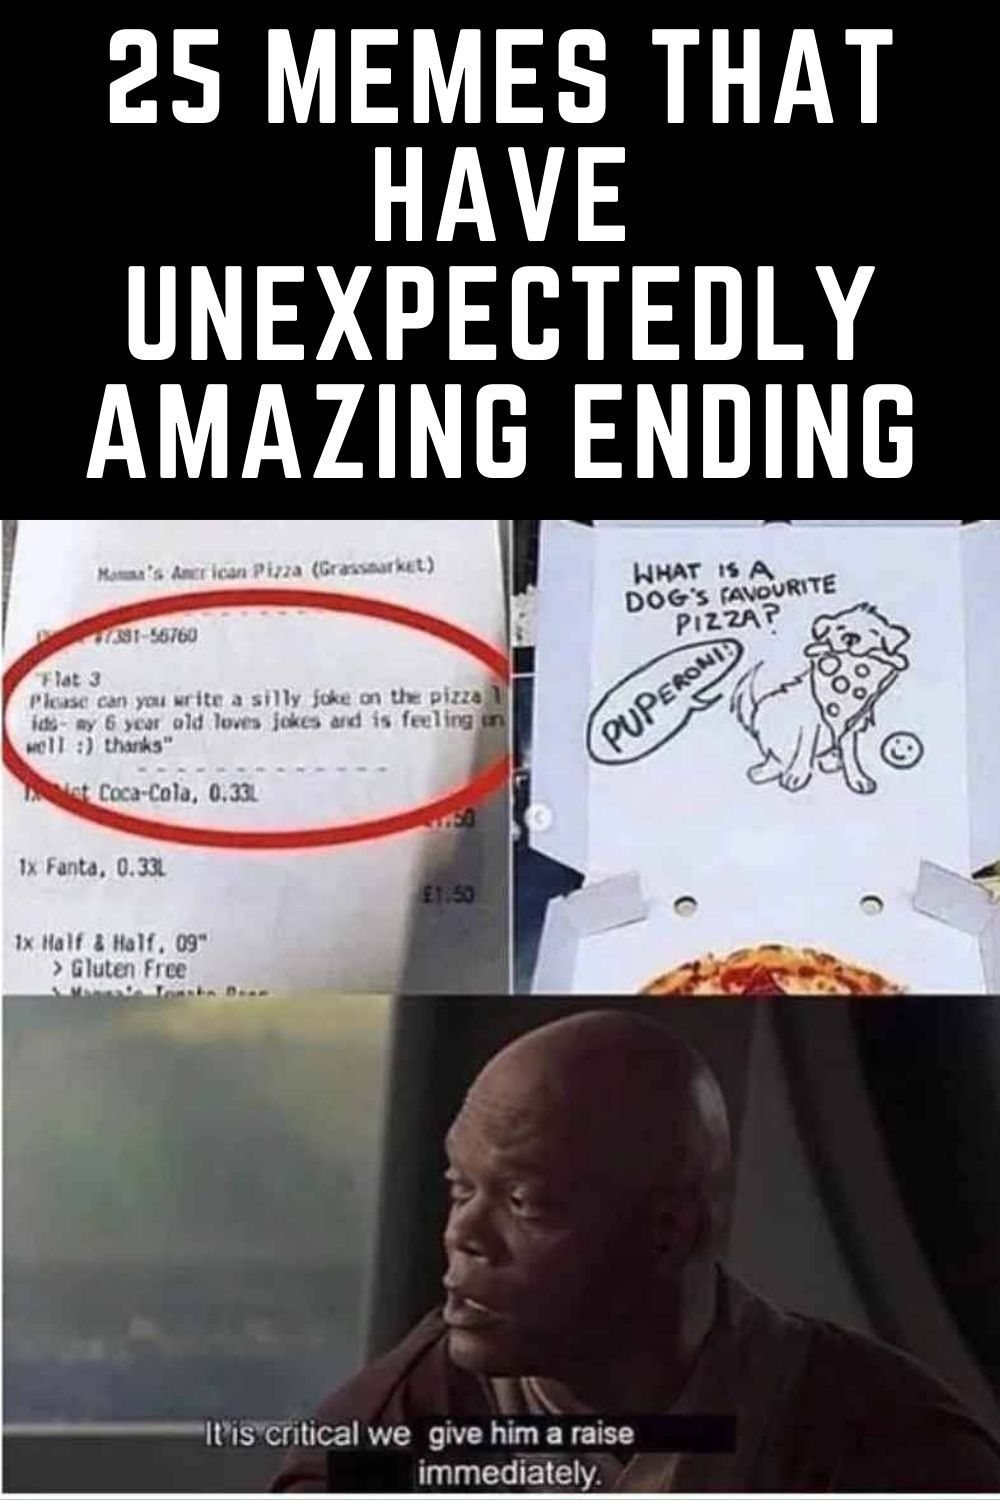 25 Memes That Have Unexpectedly Amazing Ending Funny Fails Humor Funny